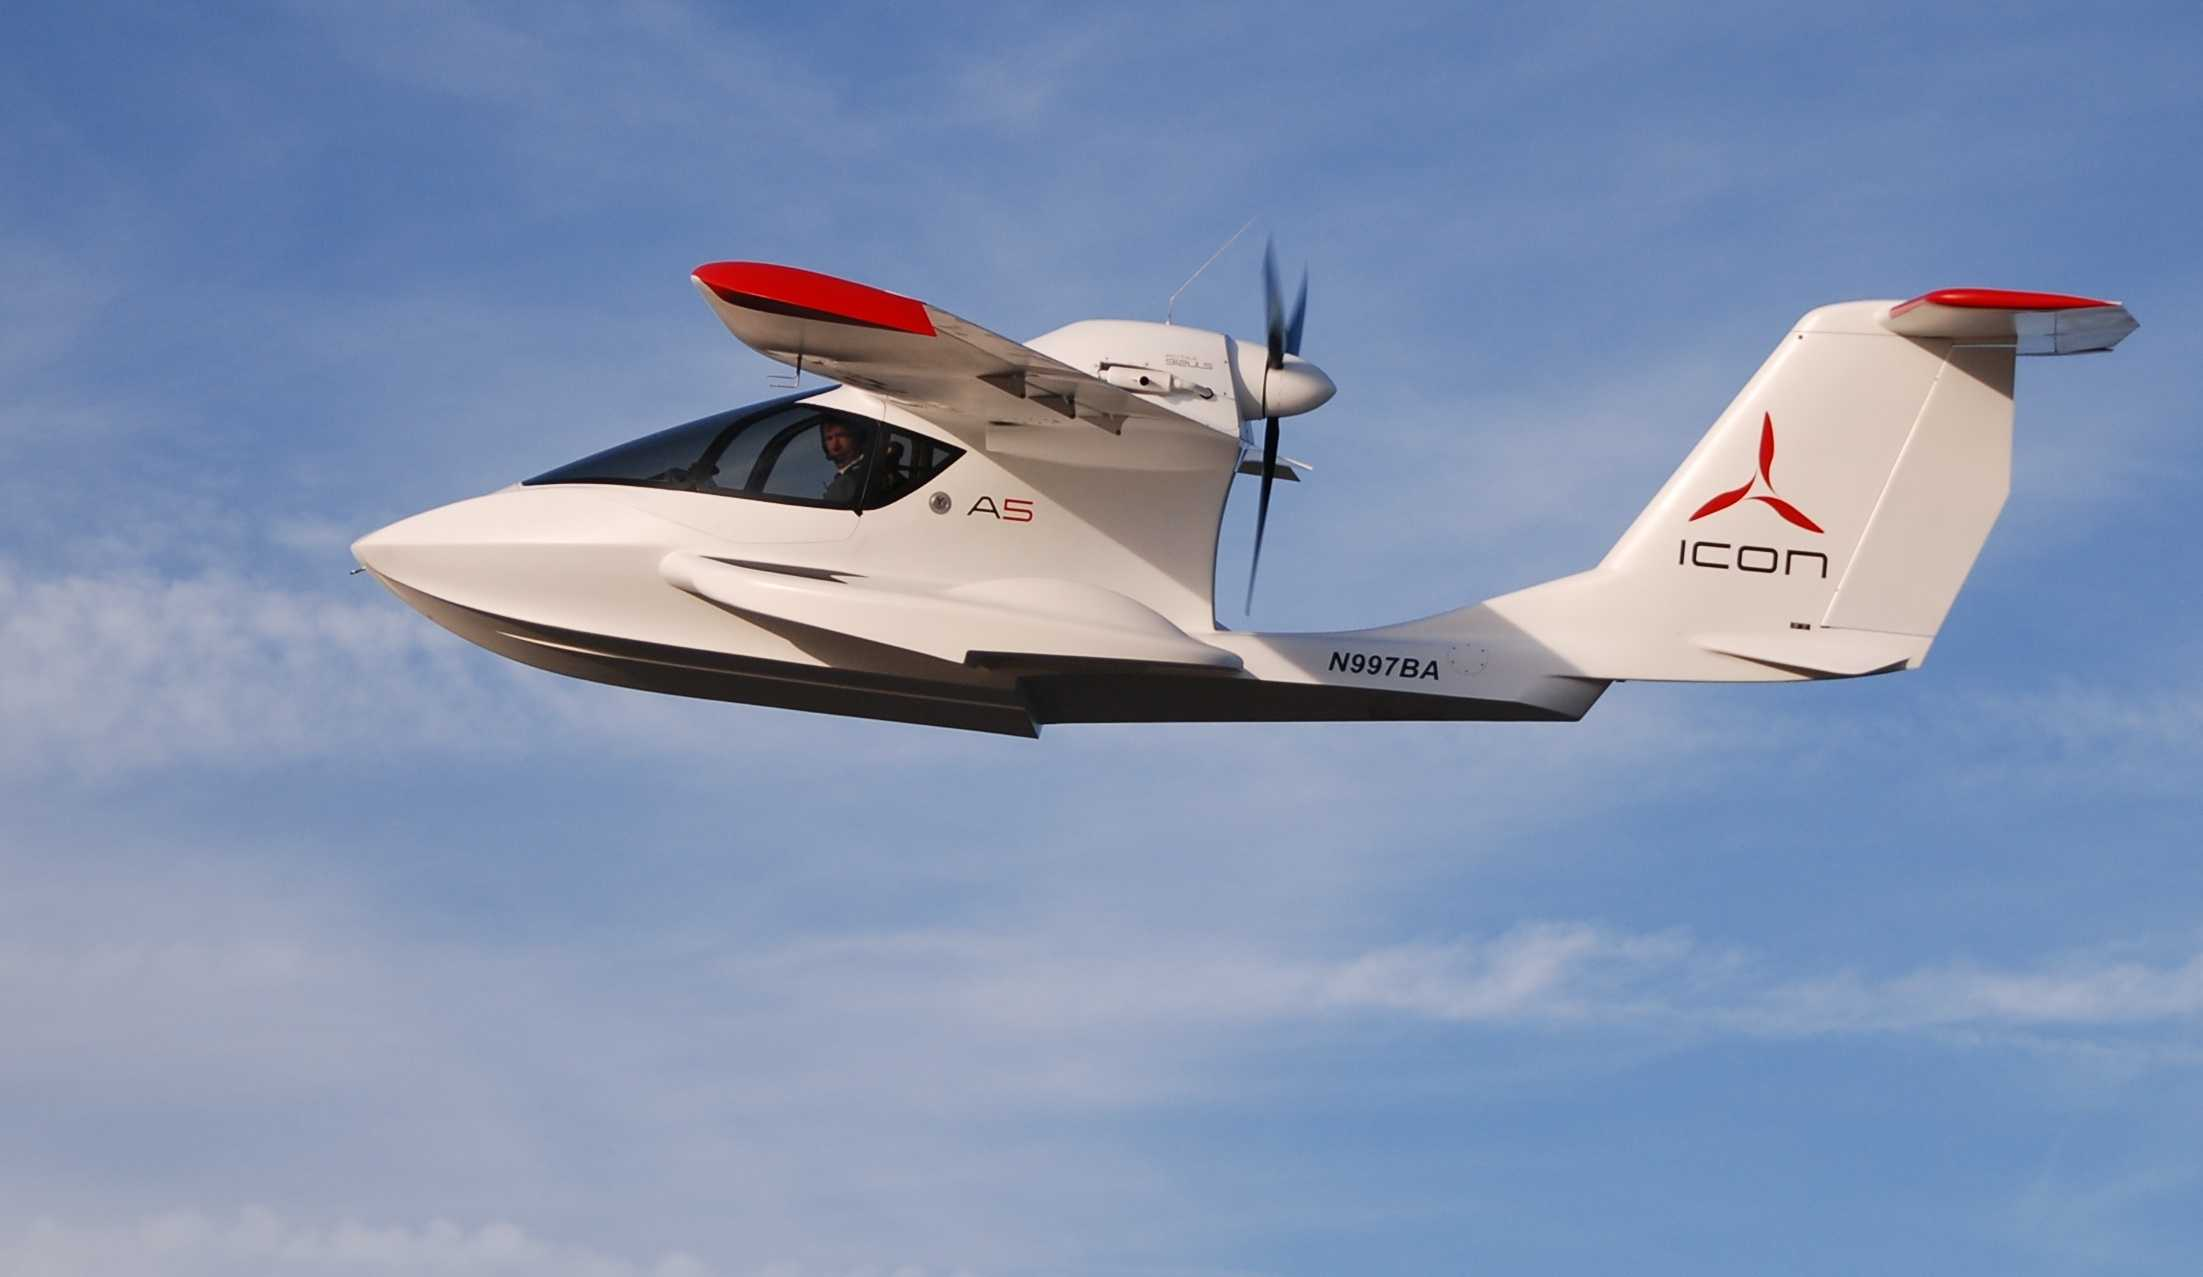 ICON is the maker of the amphibious light-sport A5 aircraft. Click through this slideshow to see